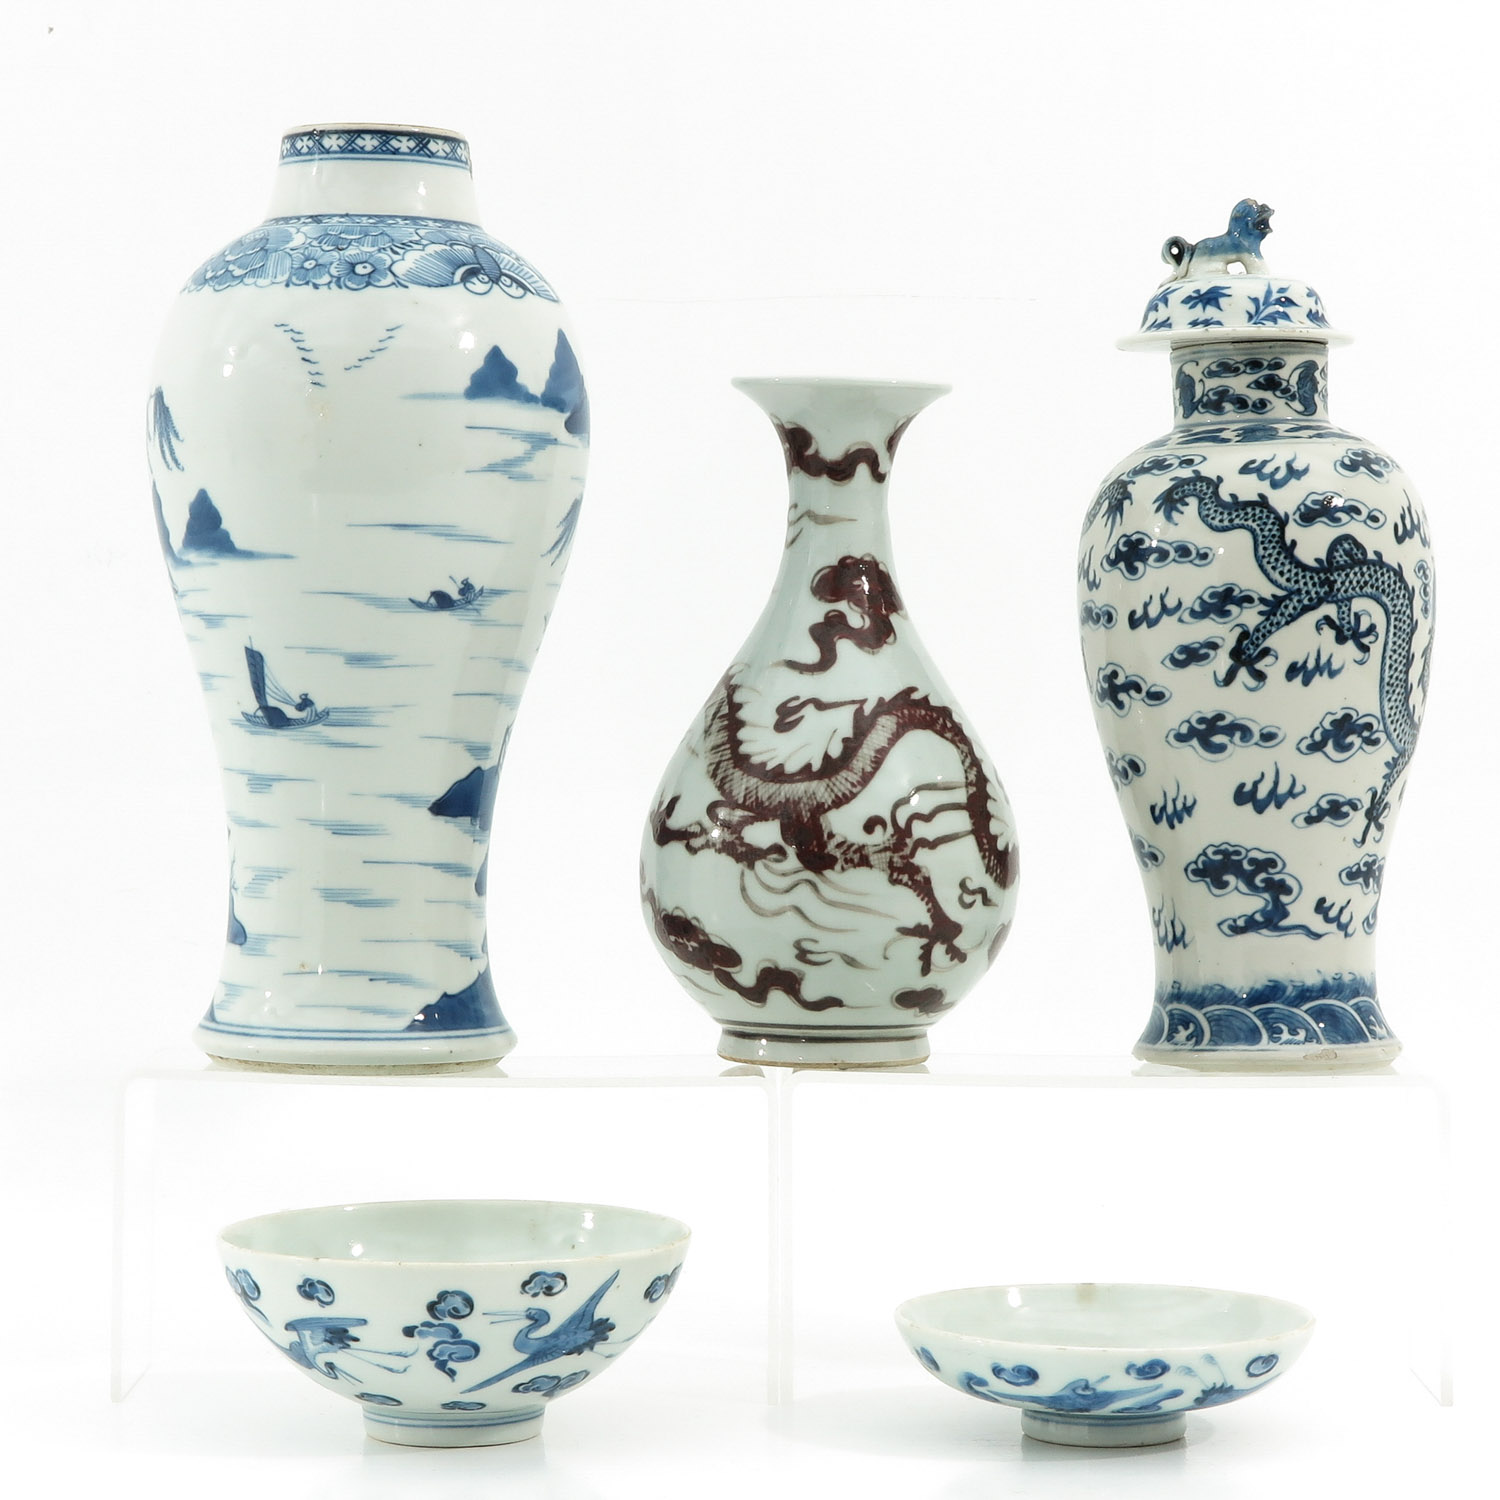 A Diverse Collection of Porcelain - Image 3 of 10